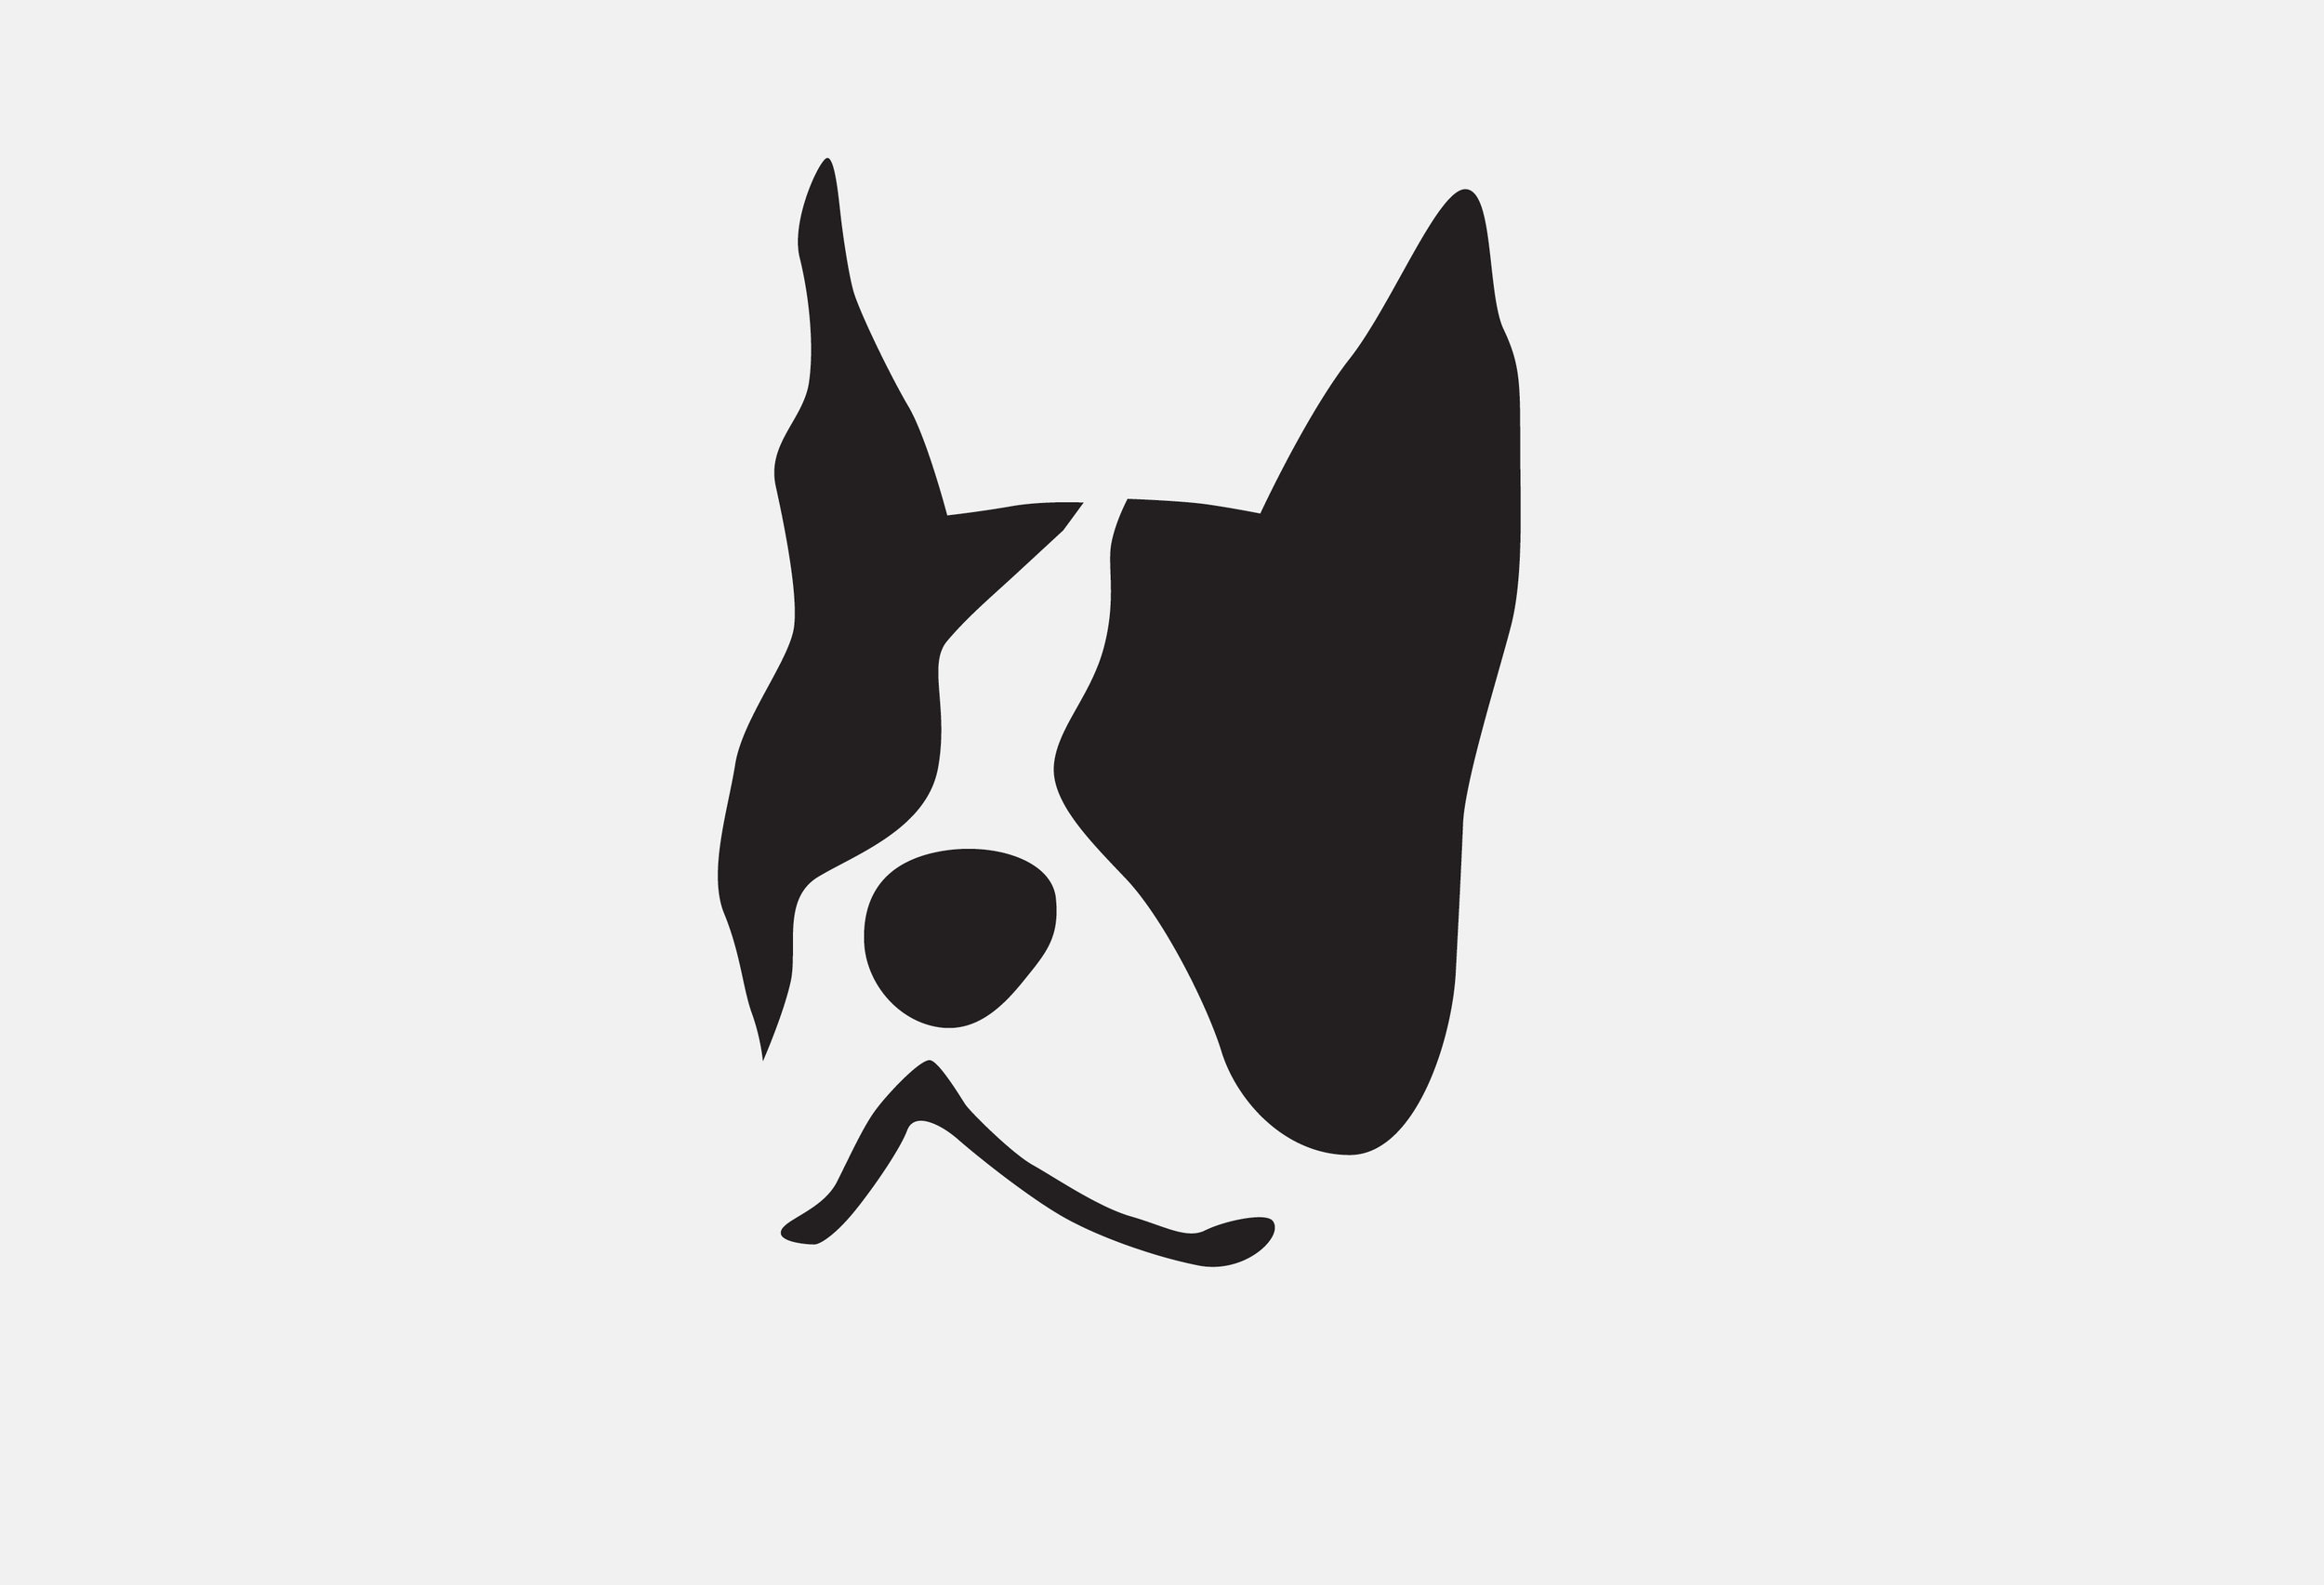 Mascot Images of Project dog5.jpg